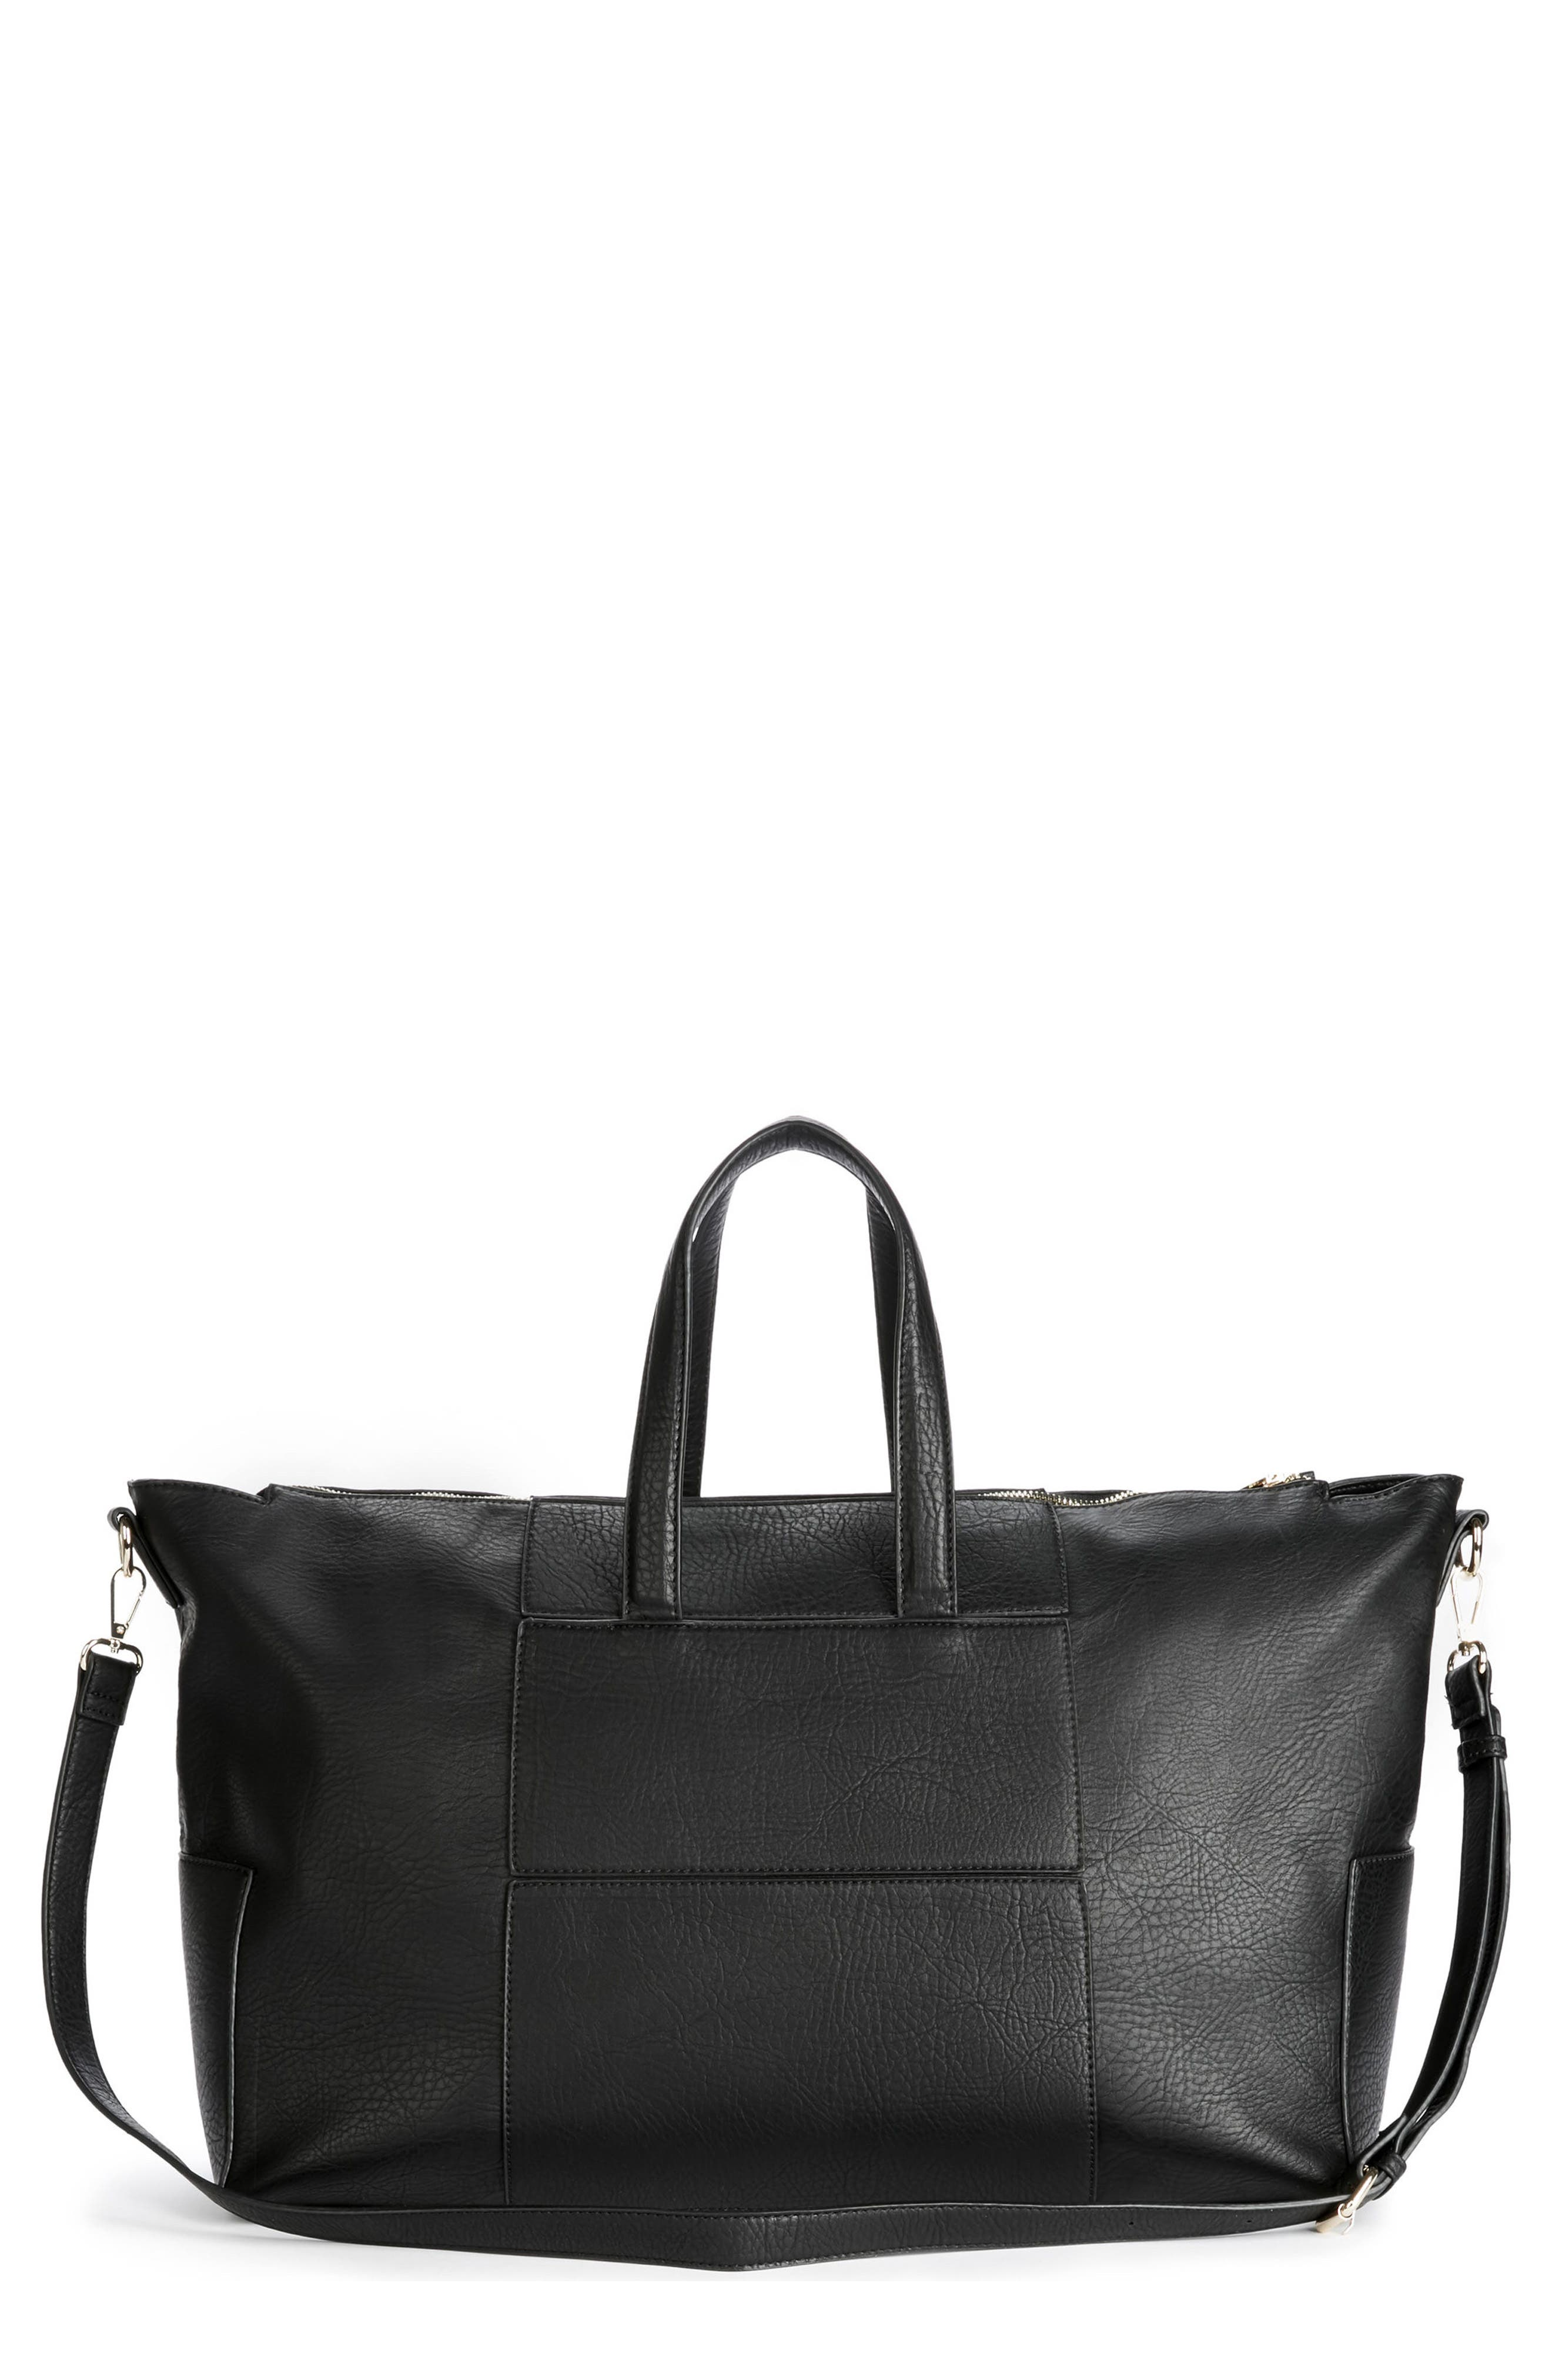 Sole Society Cory Faux Leather Travel Tote